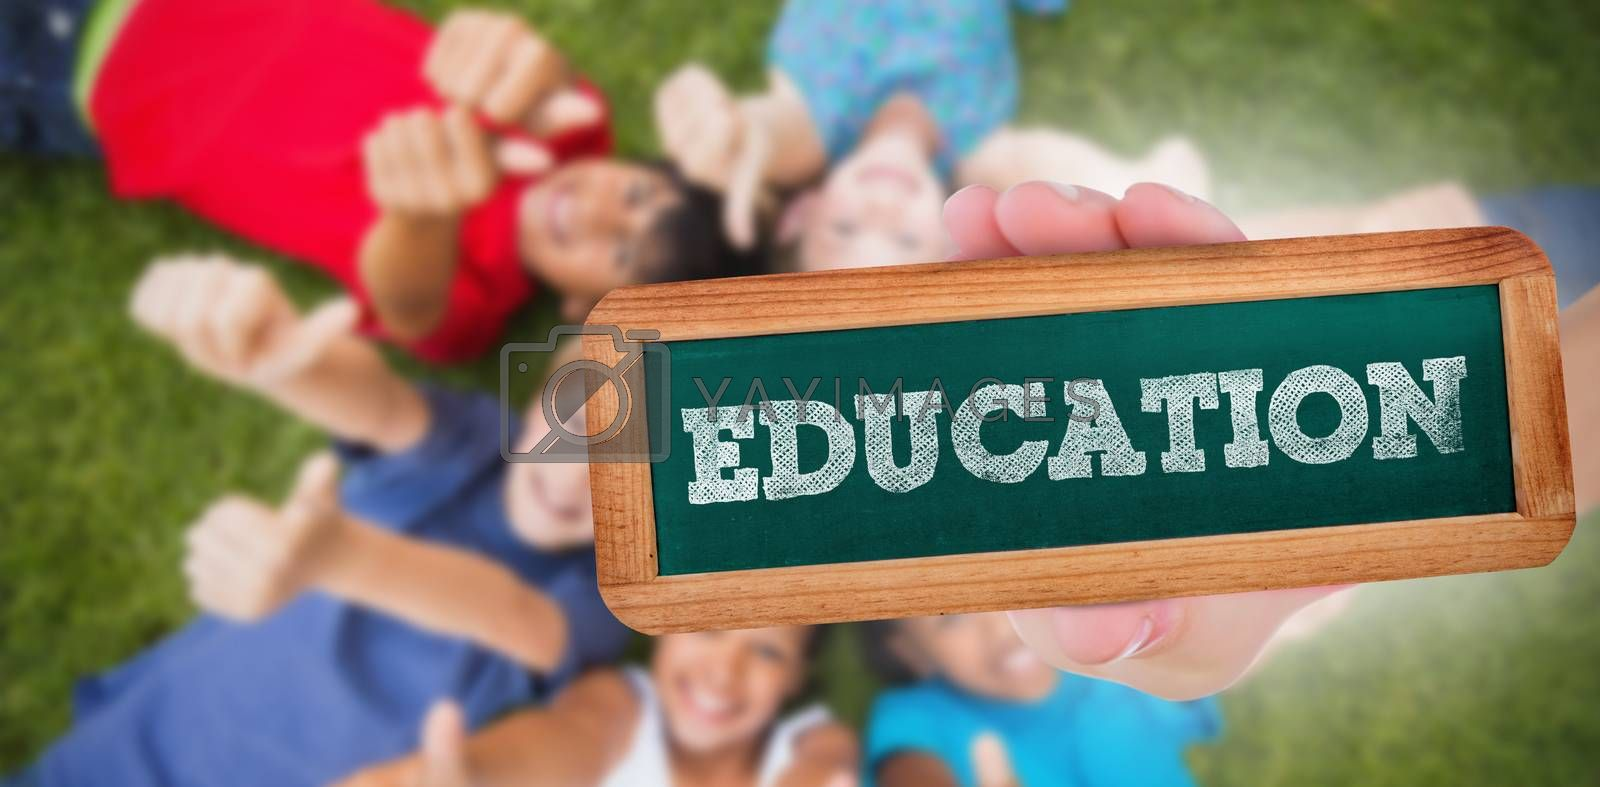 The word education and hand showing chalkboard against happy friends playing in the park